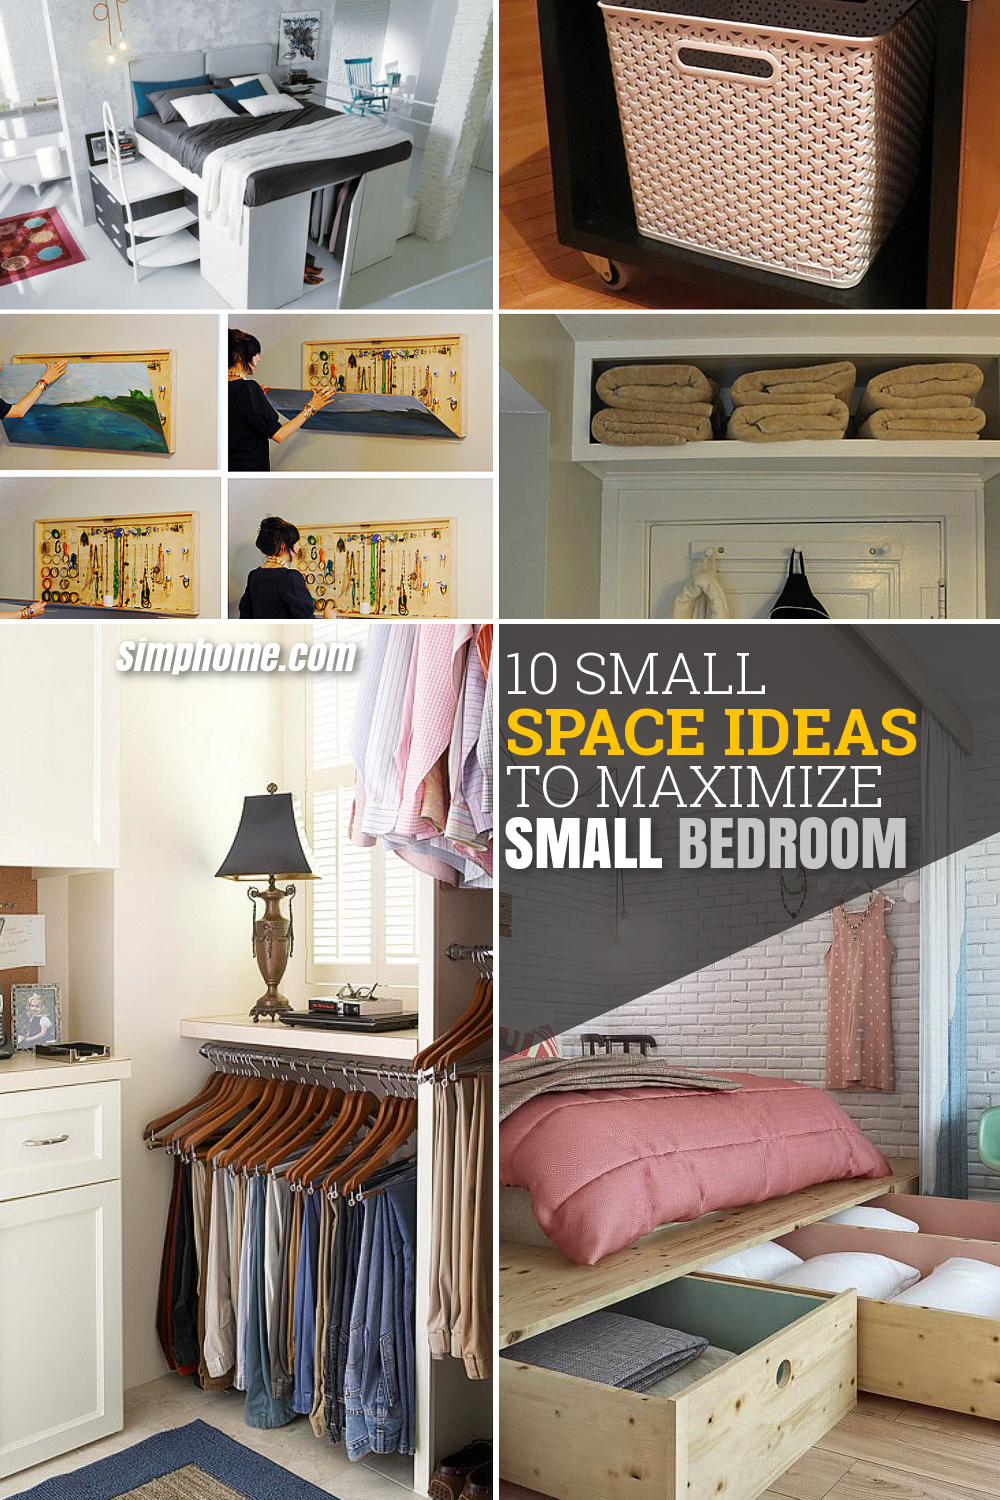 10 Small Space Ideas to Maximize Small Bedroom via Simphome long pinterest